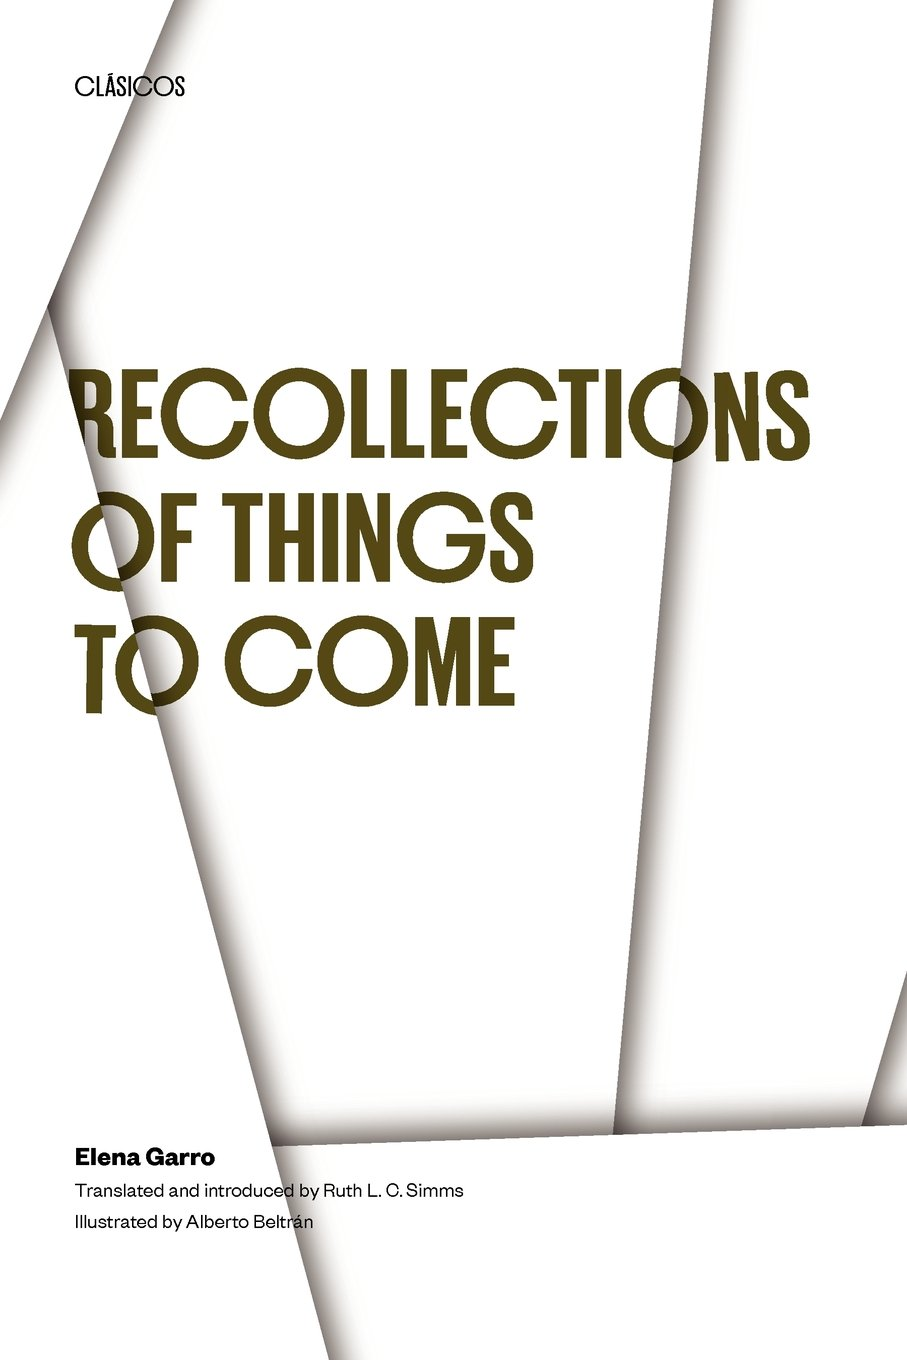 Recollections of things to come texas pan american series elena recollections of things to come texas pan american series elena garro alberto beltrn ruth l c simms 9780292770065 amazon books fandeluxe Images